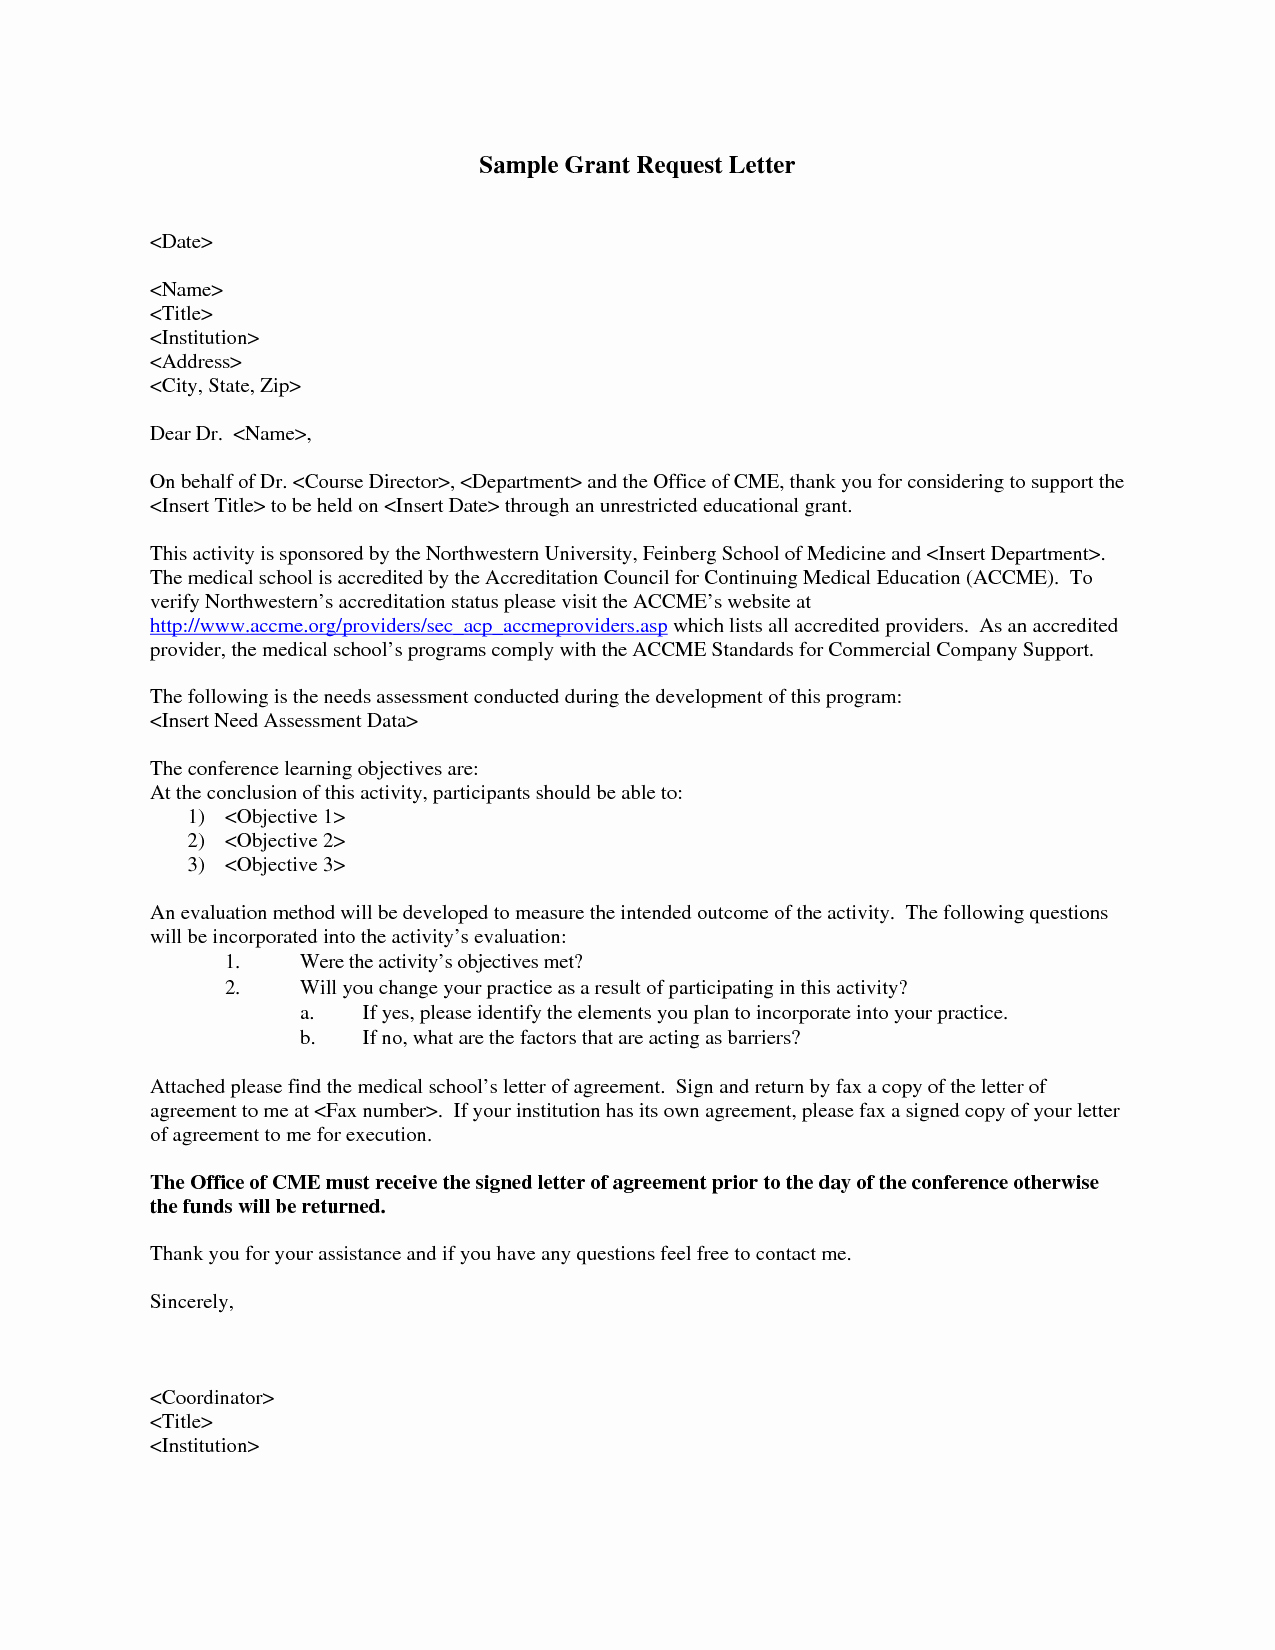 Letter Of Request format New Grant Request Letter Write A Grant Request Letter